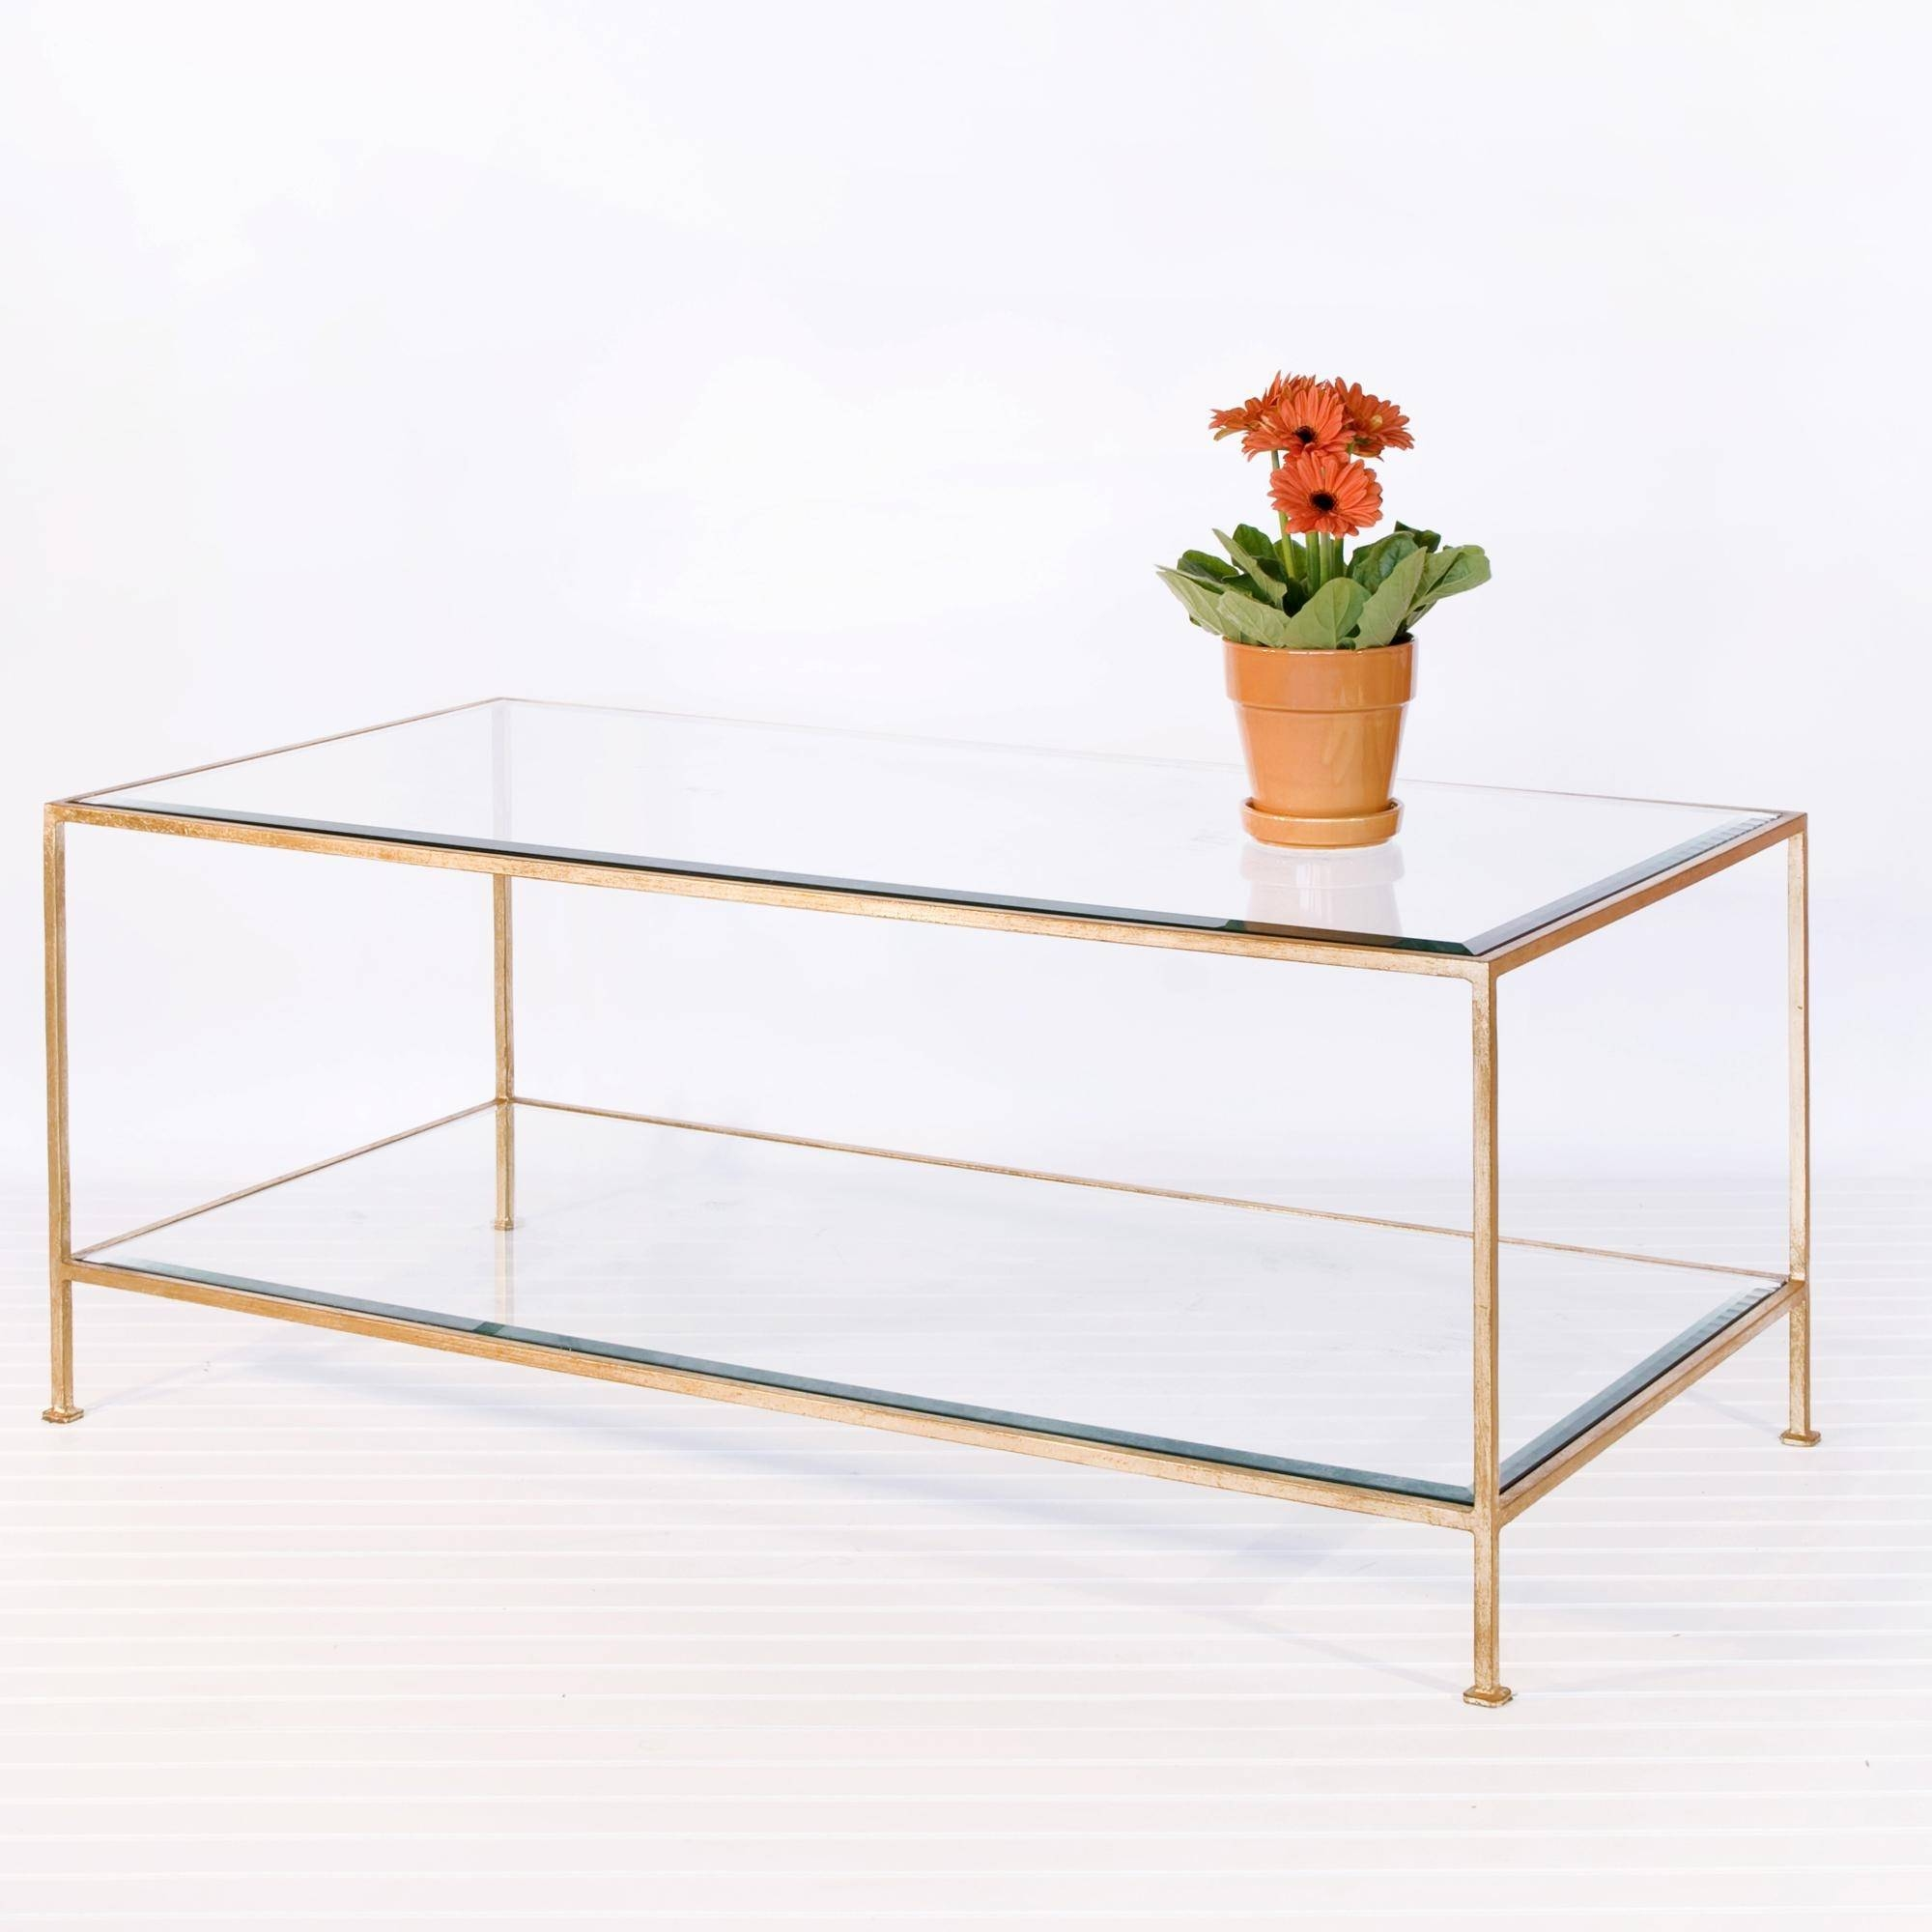 Captivating Glass Gold Coffee Table Coast – Antique Gold Glass inside Glass Gold Coffee Tables (Image 2 of 30)